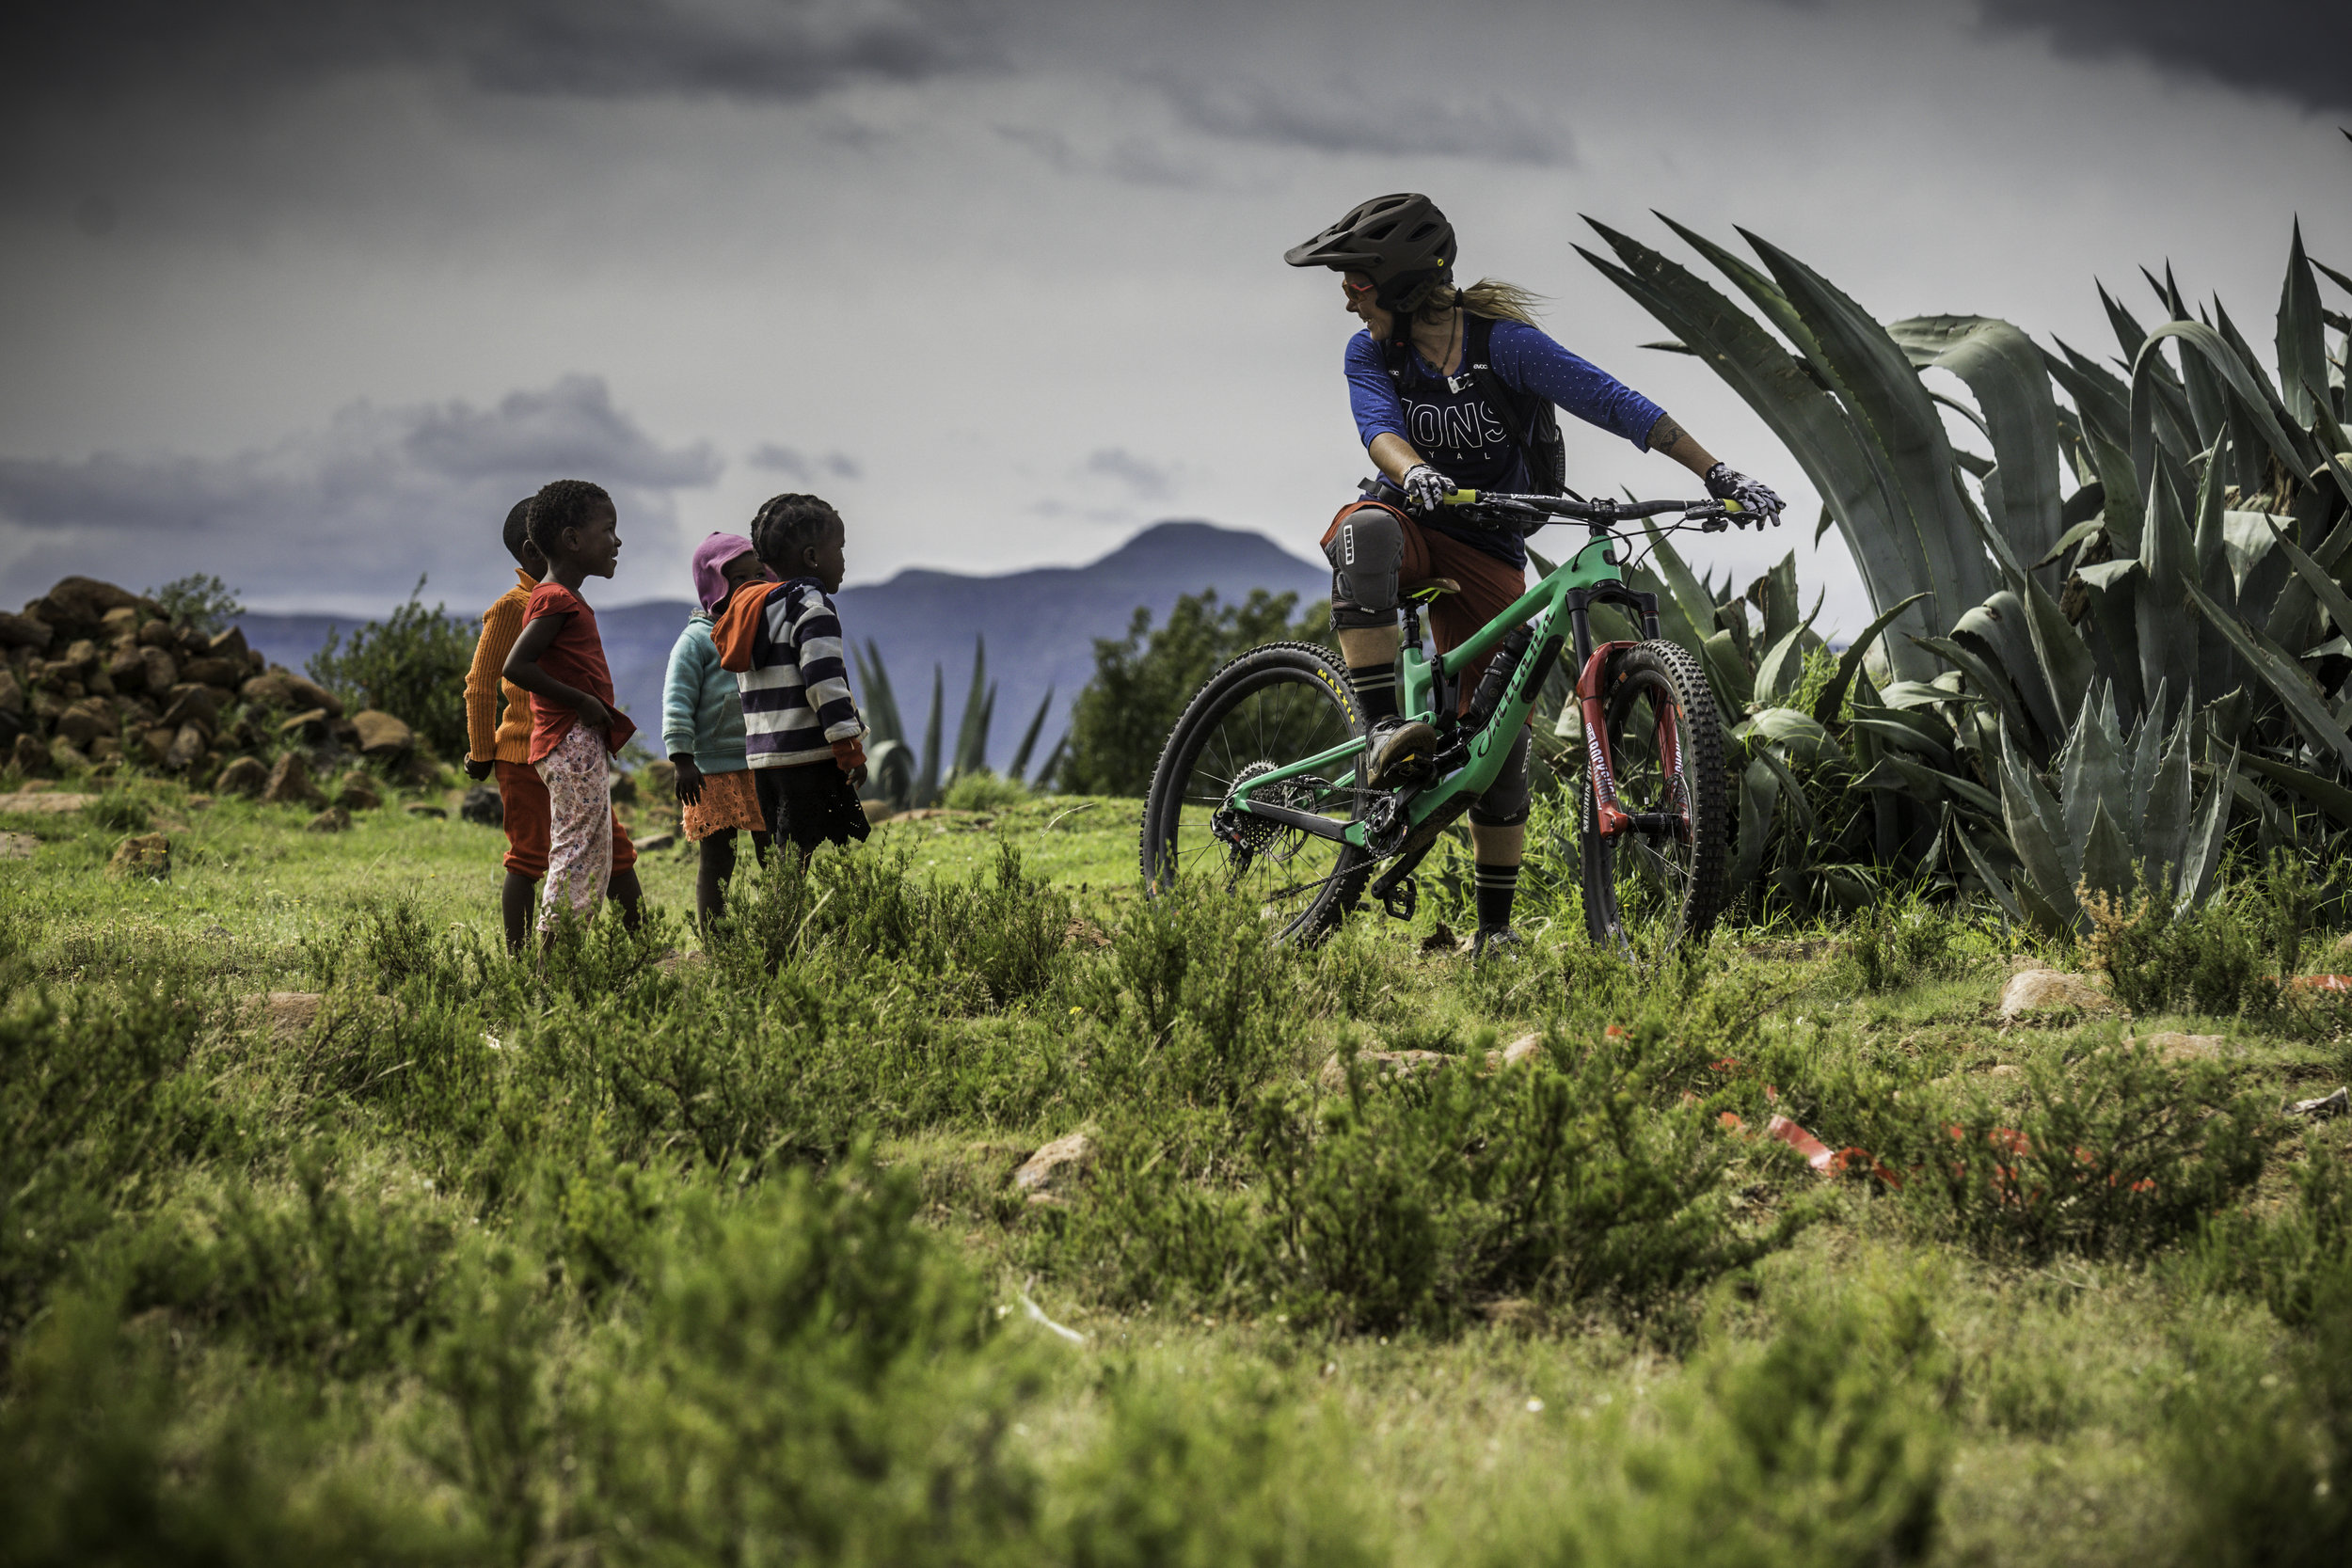 So much excitement, so many smiles. Pretty surreal how a simple tool like a bicycle can provide so much joy in a child's life.